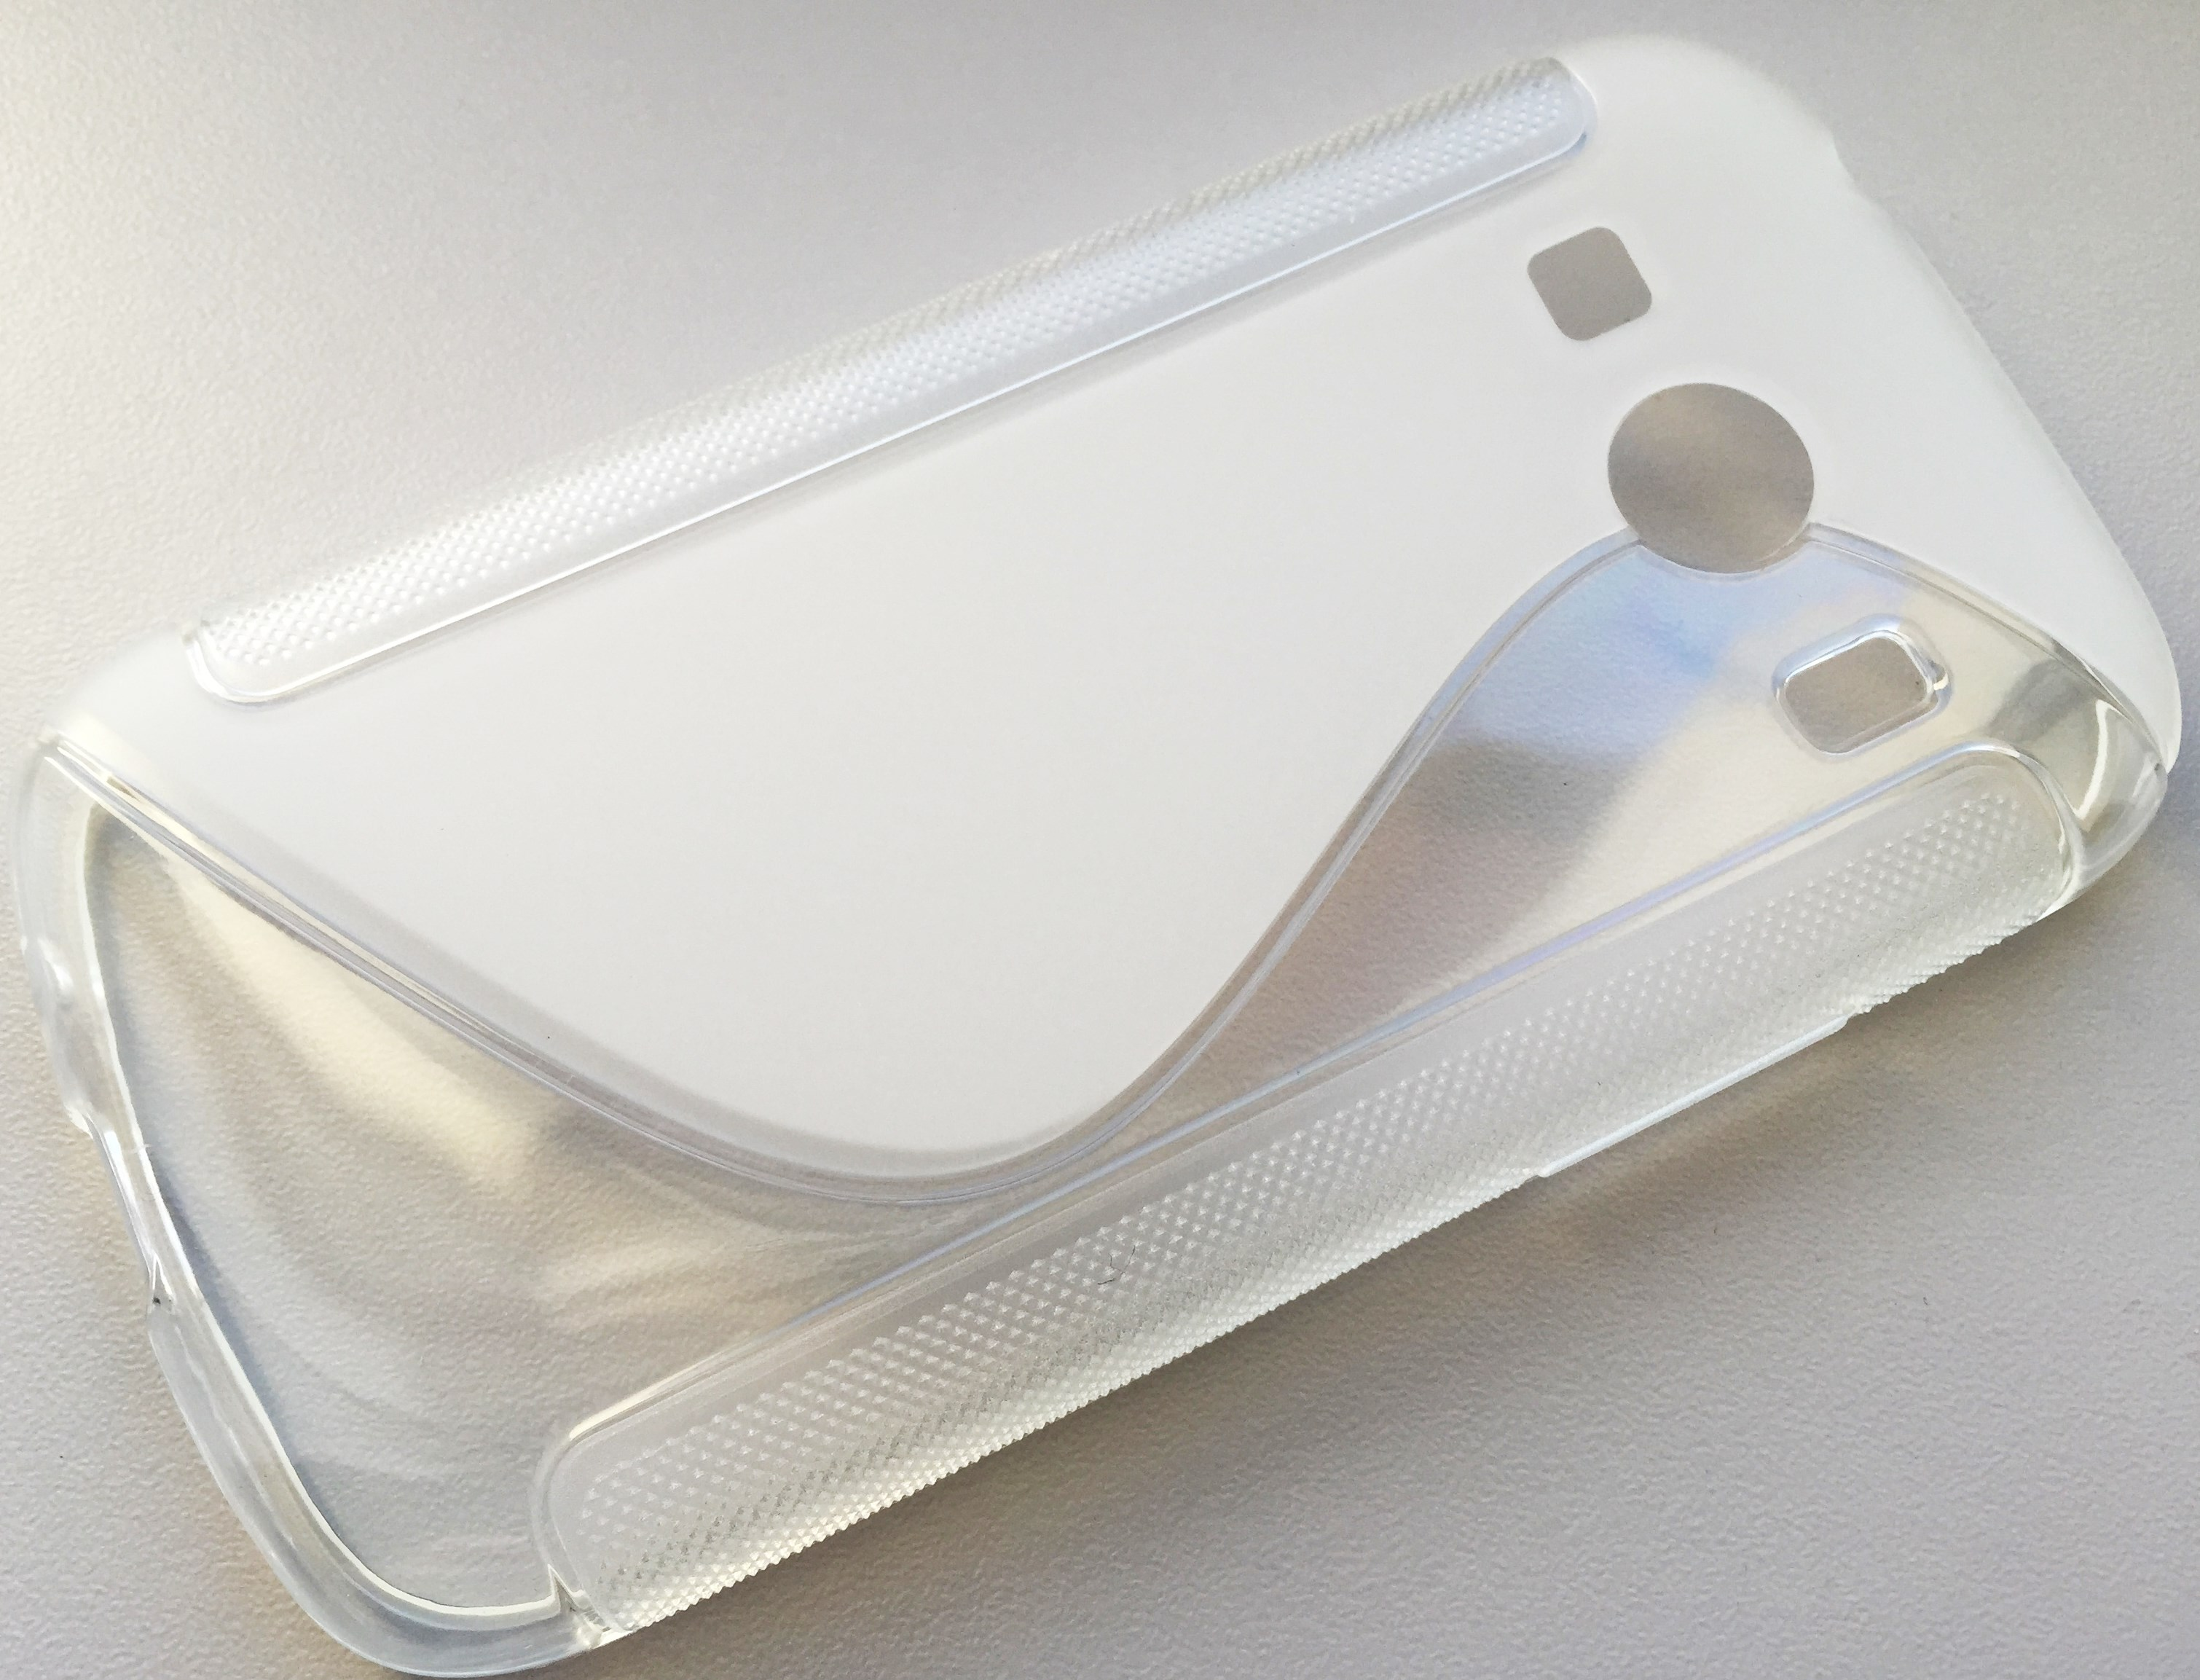 S Case pouzdro Samsung G357 Galaxy Ace4 transparent white